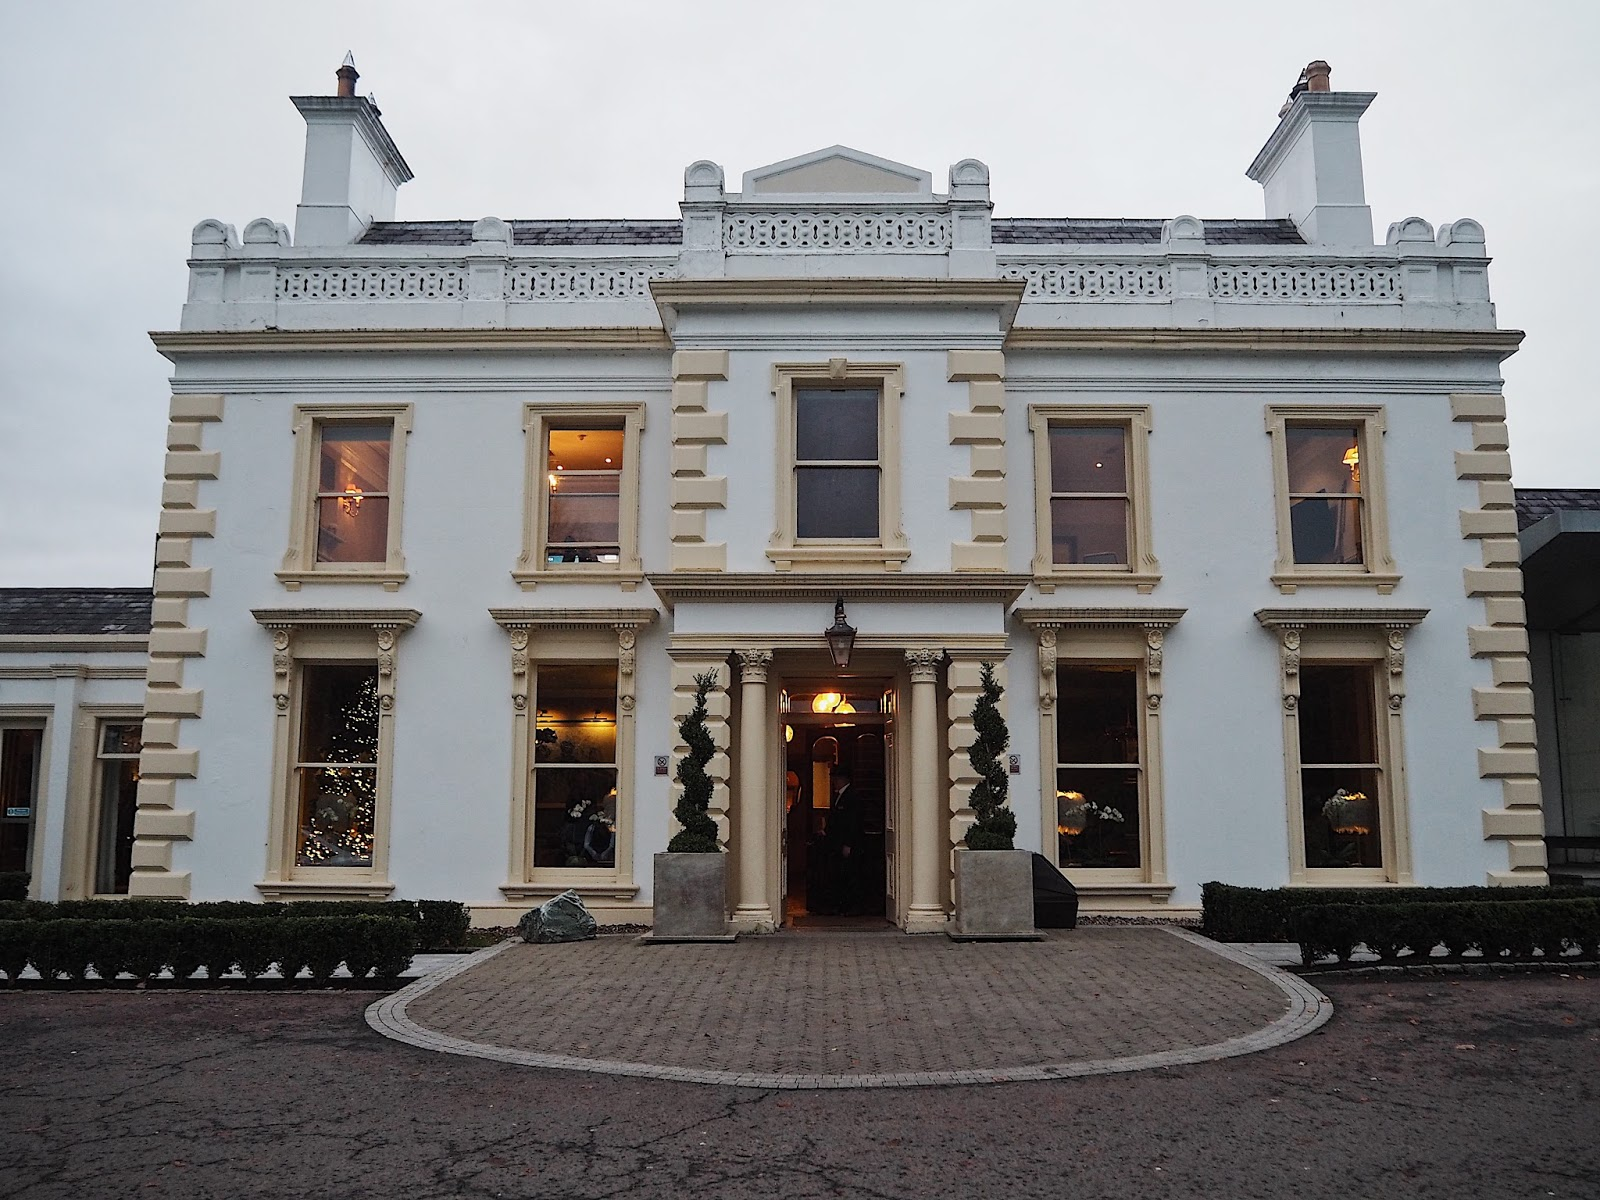 The Entrance of Galgorm Resort and Spa